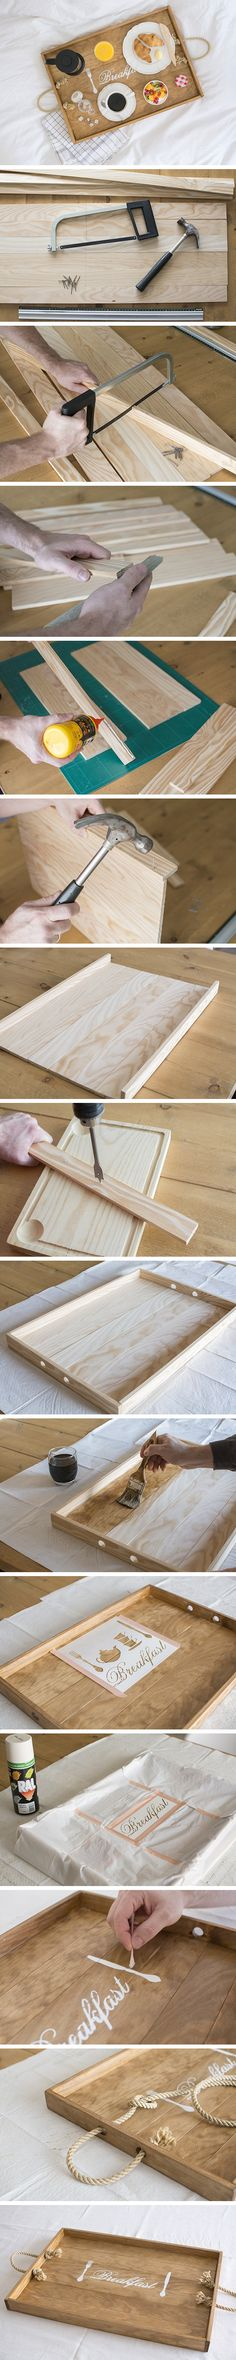 Discover recipes, home ideas, style inspiration and other ideas to try. Diy Arts And Crafts, Creative Crafts, Home Crafts, Diy Wood Projects, Diy Projects To Try, Woodworking Projects, Breakfast Tray, Wooden Art, Diy Gifts